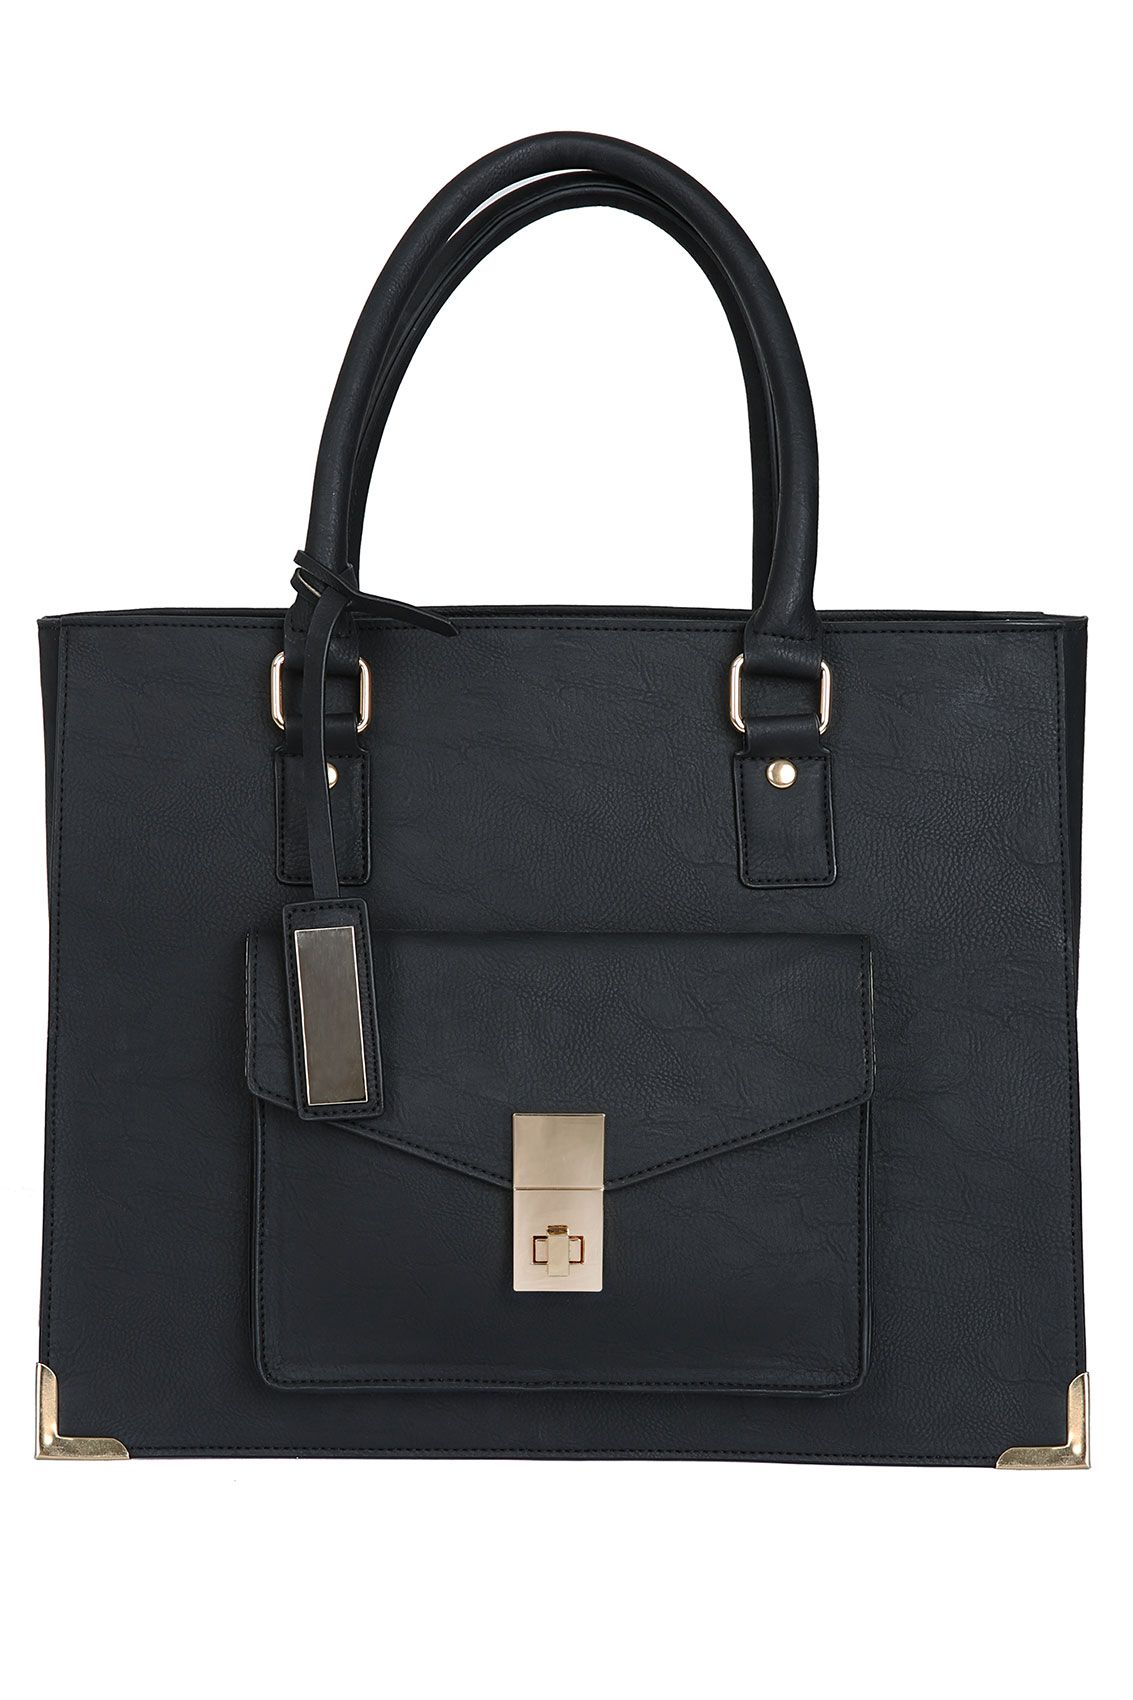 Black Leather Look Structured Tote Bag With Gold Details